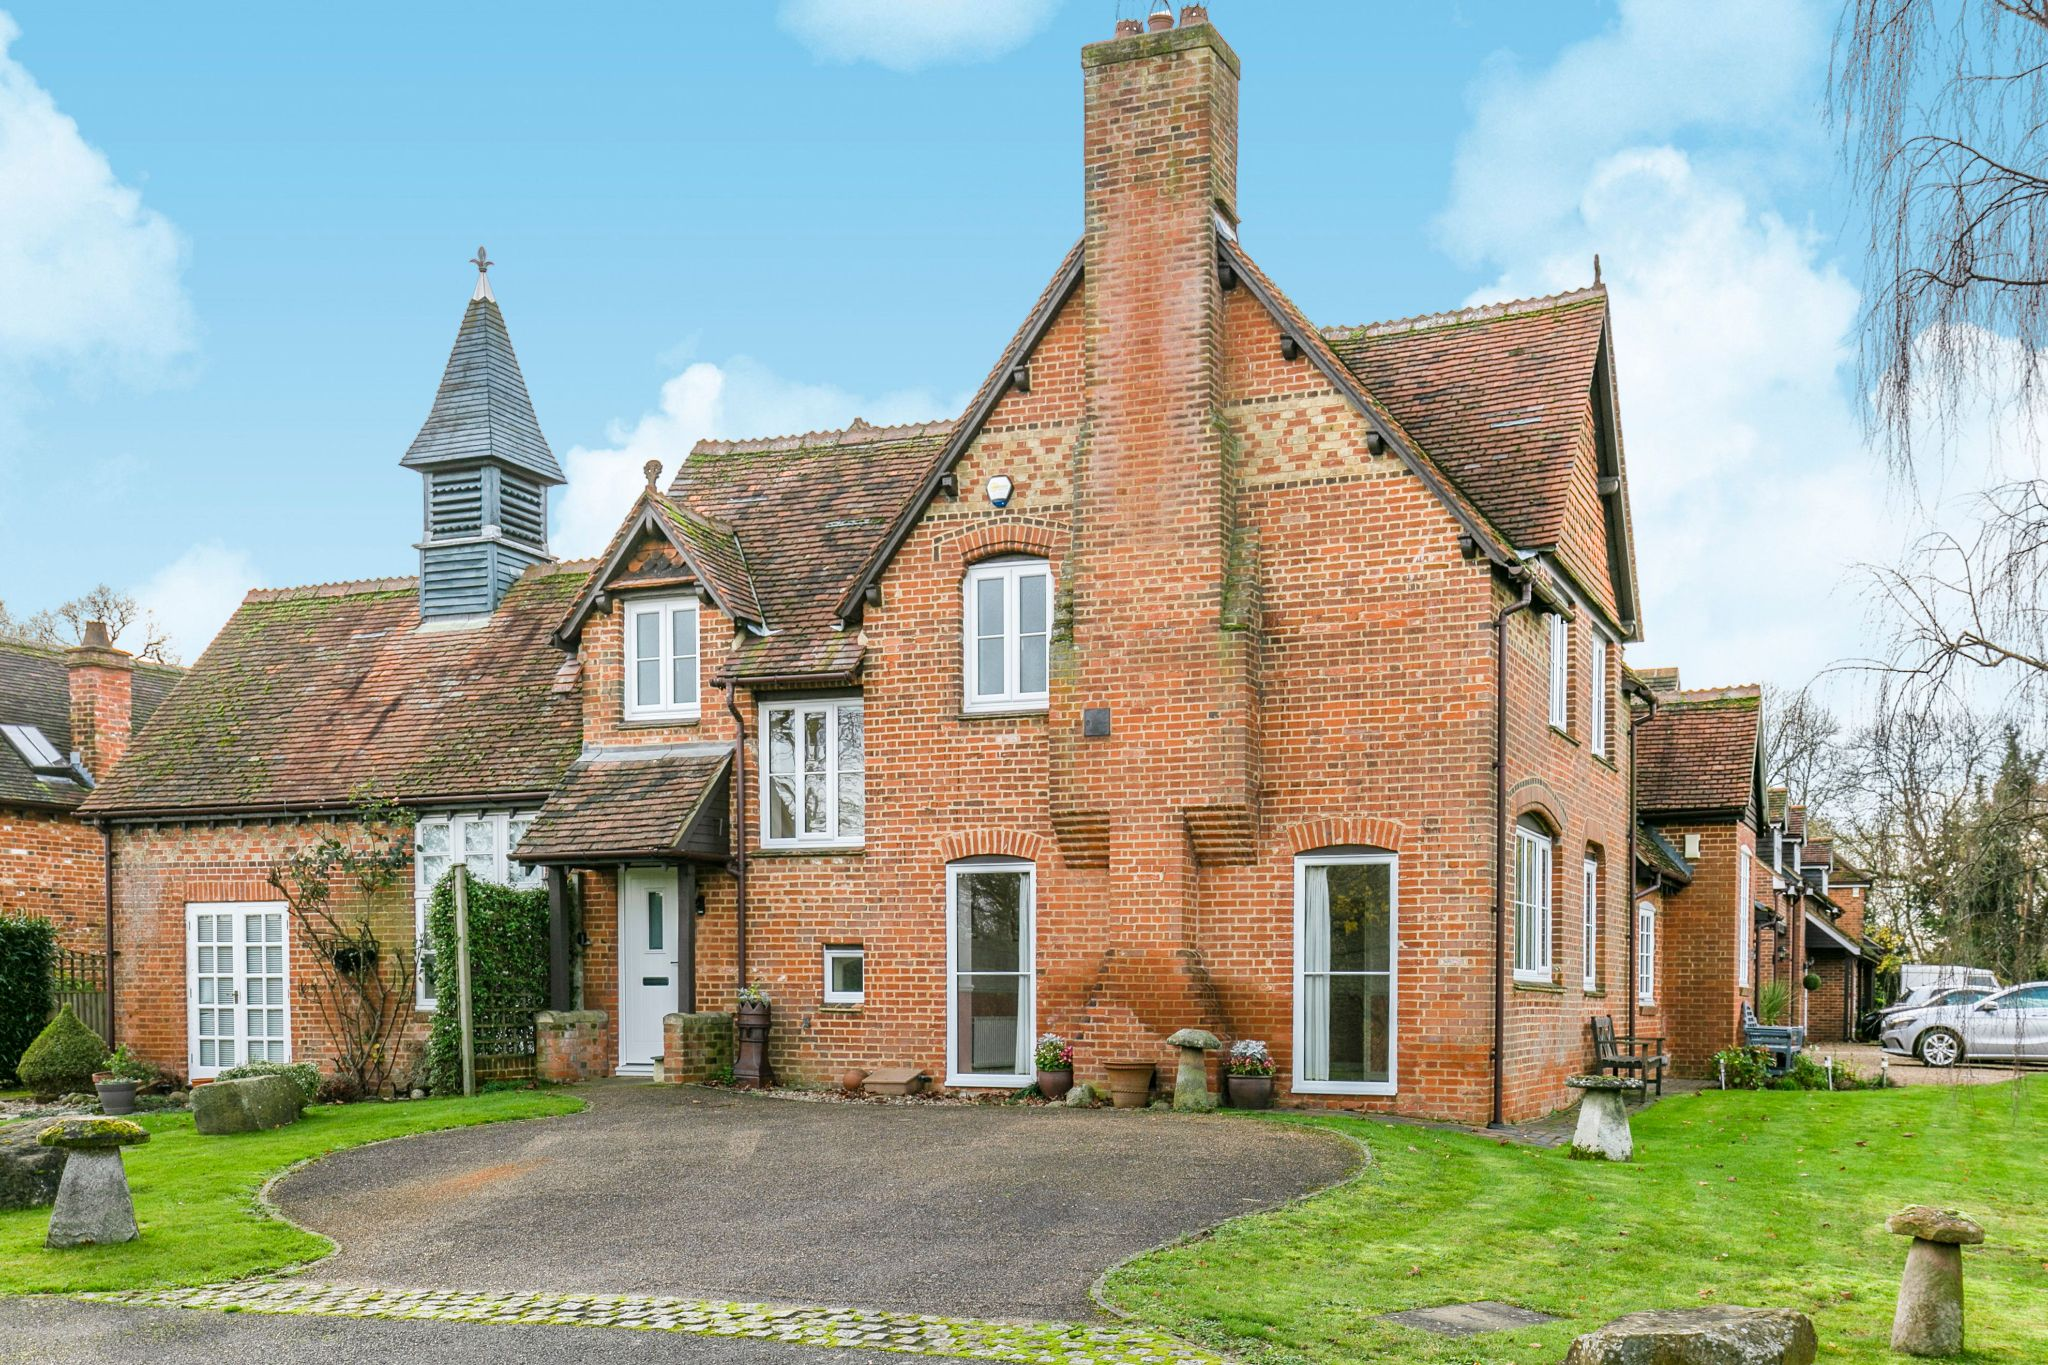 3 bedroom mews house For Sale in Hatfield - Property photograph